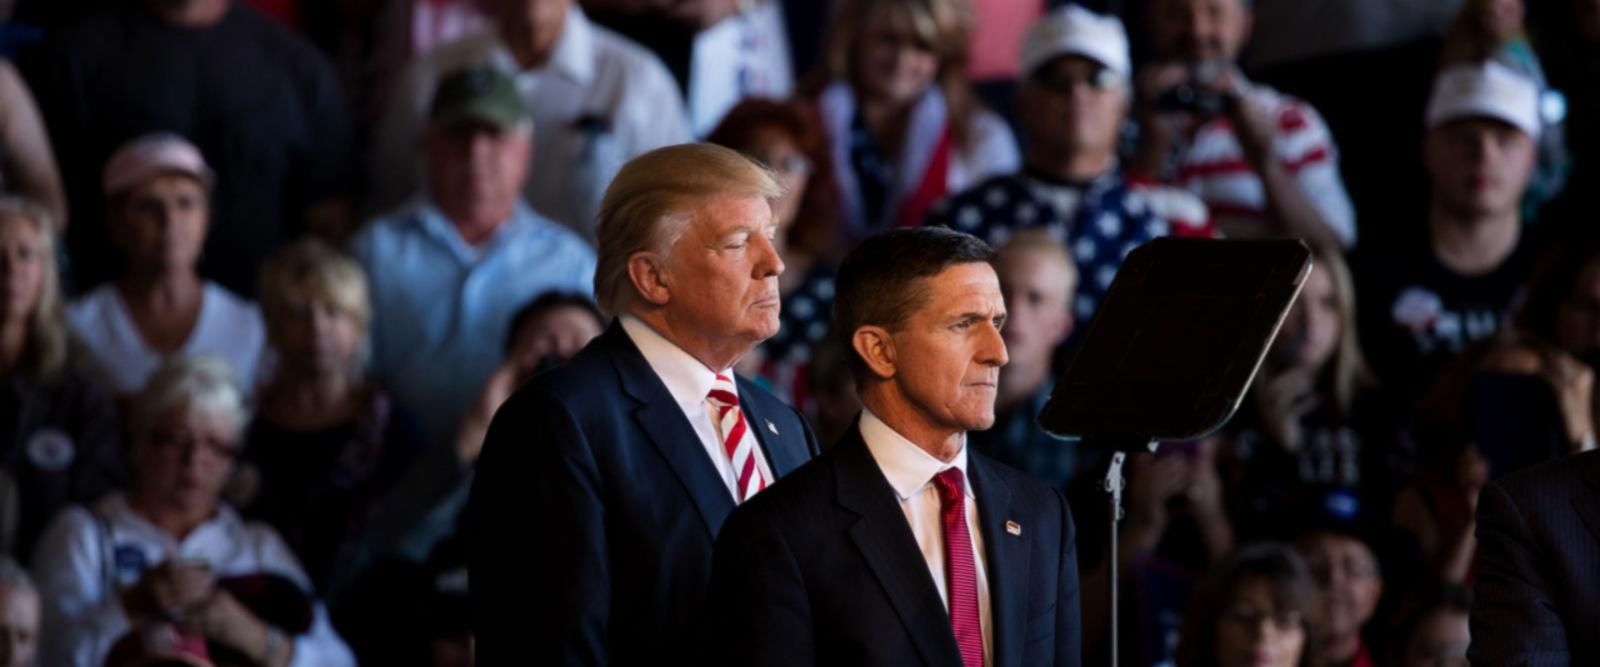 VIDEO: New signs Michael Flynn may be cutting deal with special counsel Robert Mueller